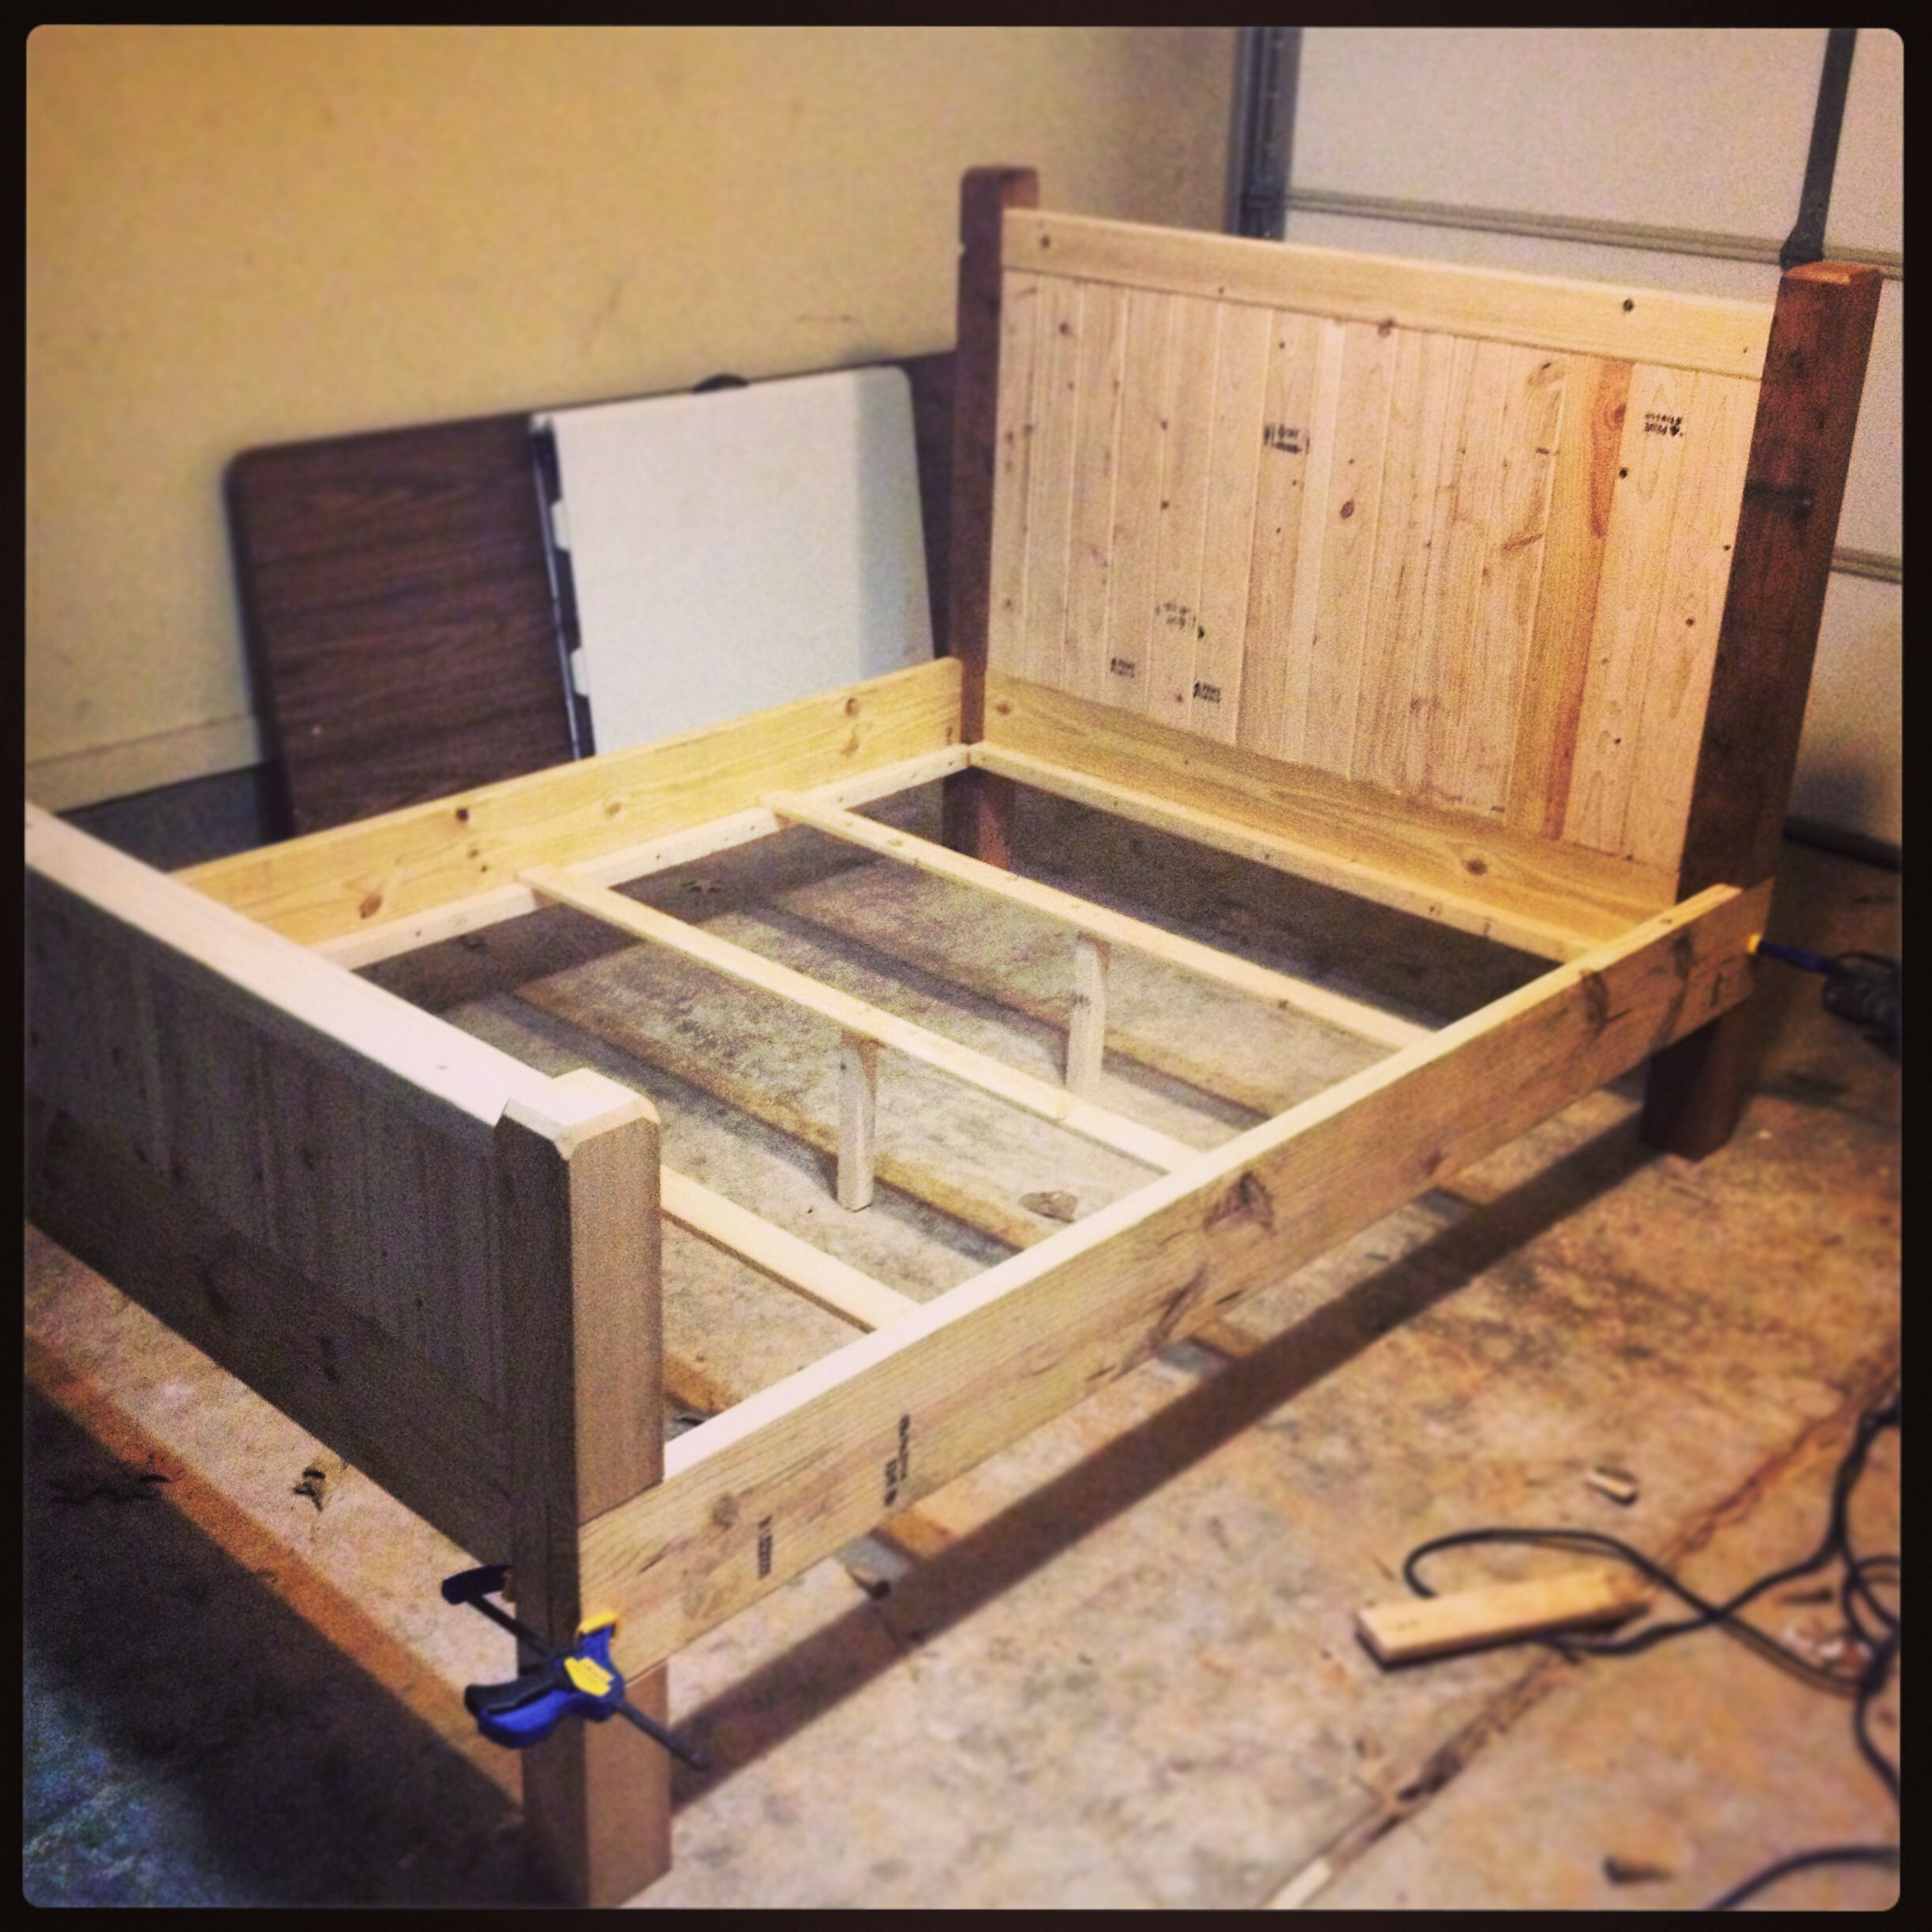 Diy Full Size Bed Frame Almost Finished Made With 2x4s 2x8s And 4x4 Posts Final Result Will Be Diy Full Size Bed Frame Bed Frame Plans 2x4 Furniture Plans